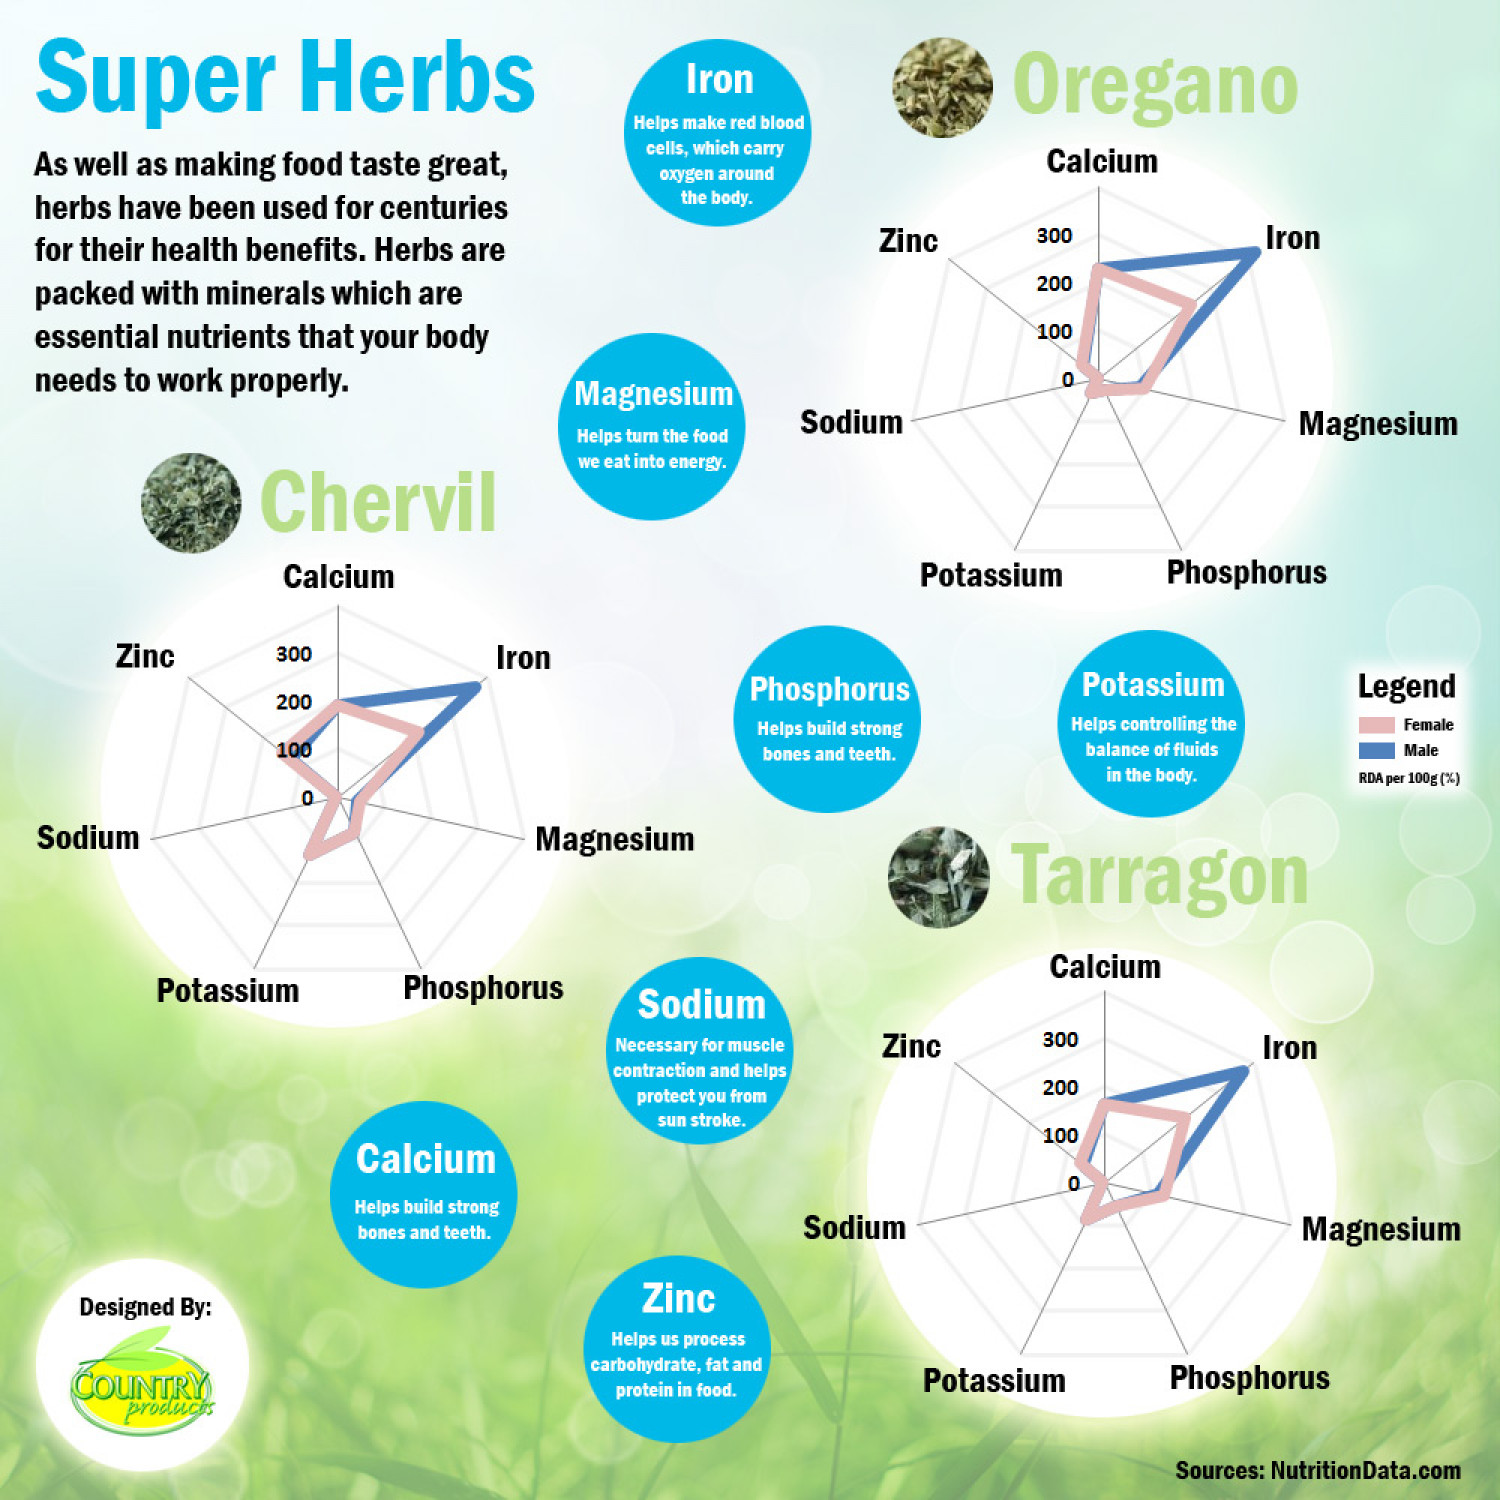 Super Herbs Infographic